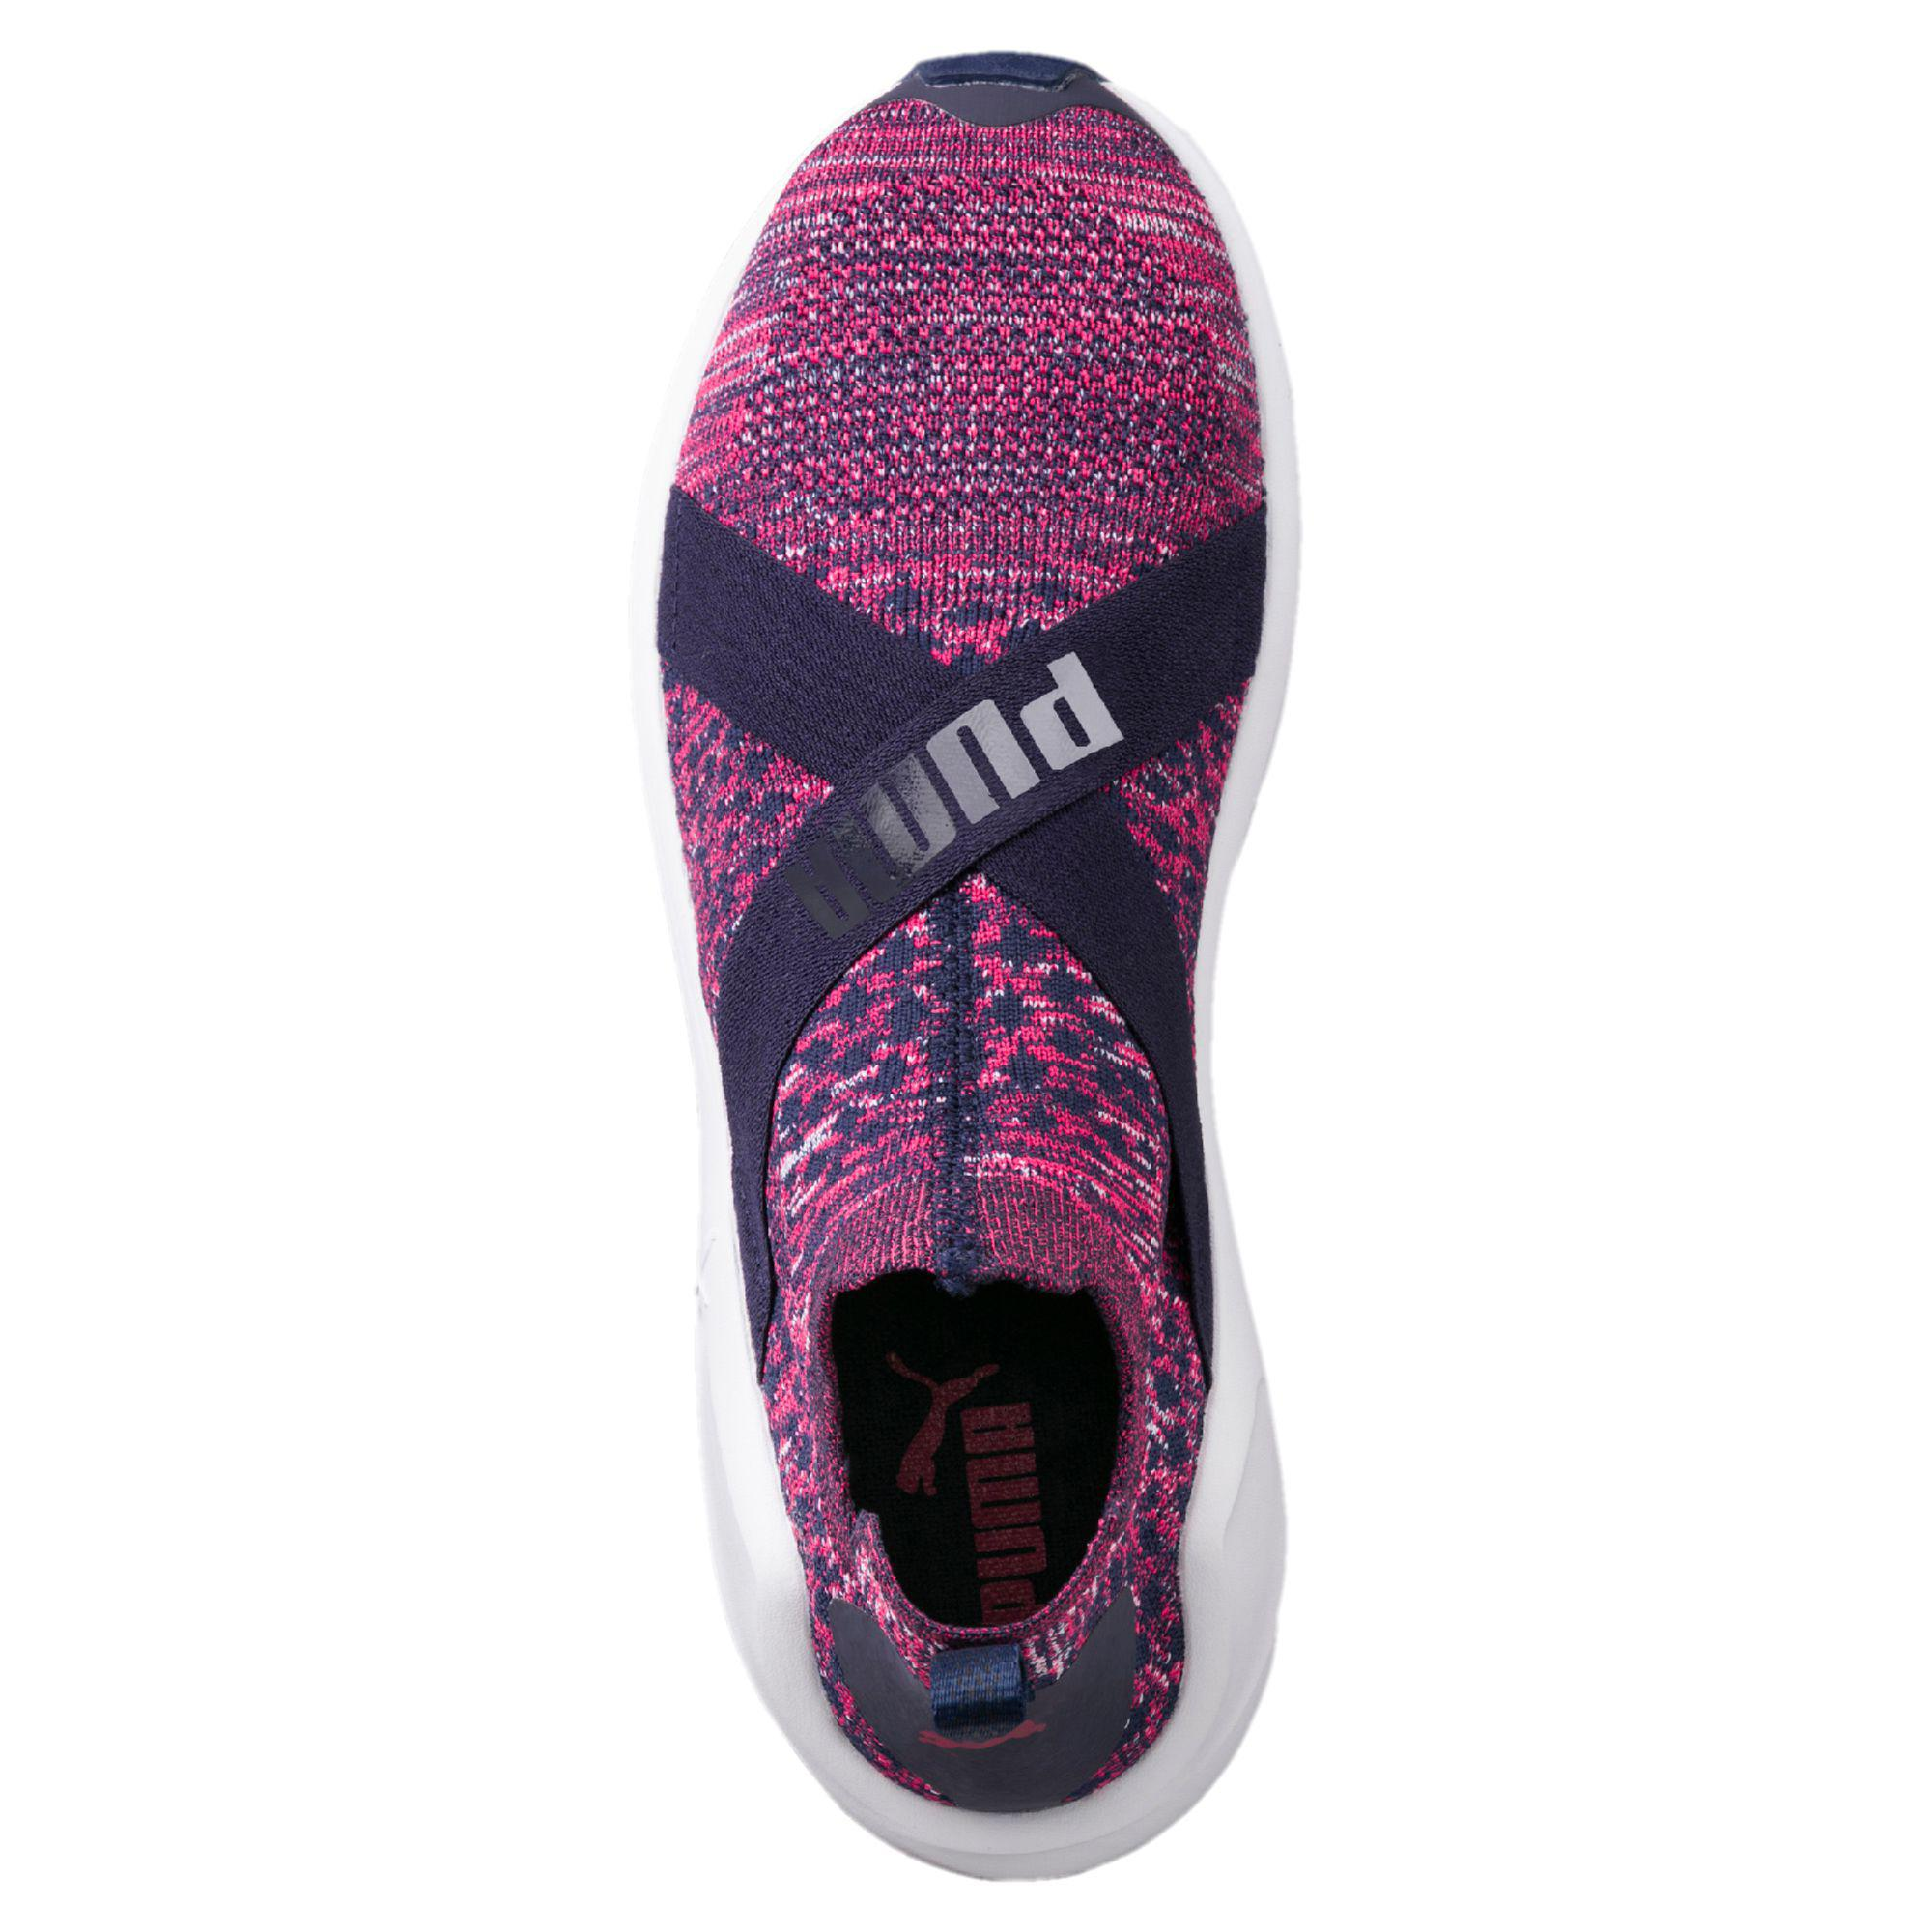 Lyst - PUMA Fierce Evoknit Women s Training Shoes in Purple ff983cc54